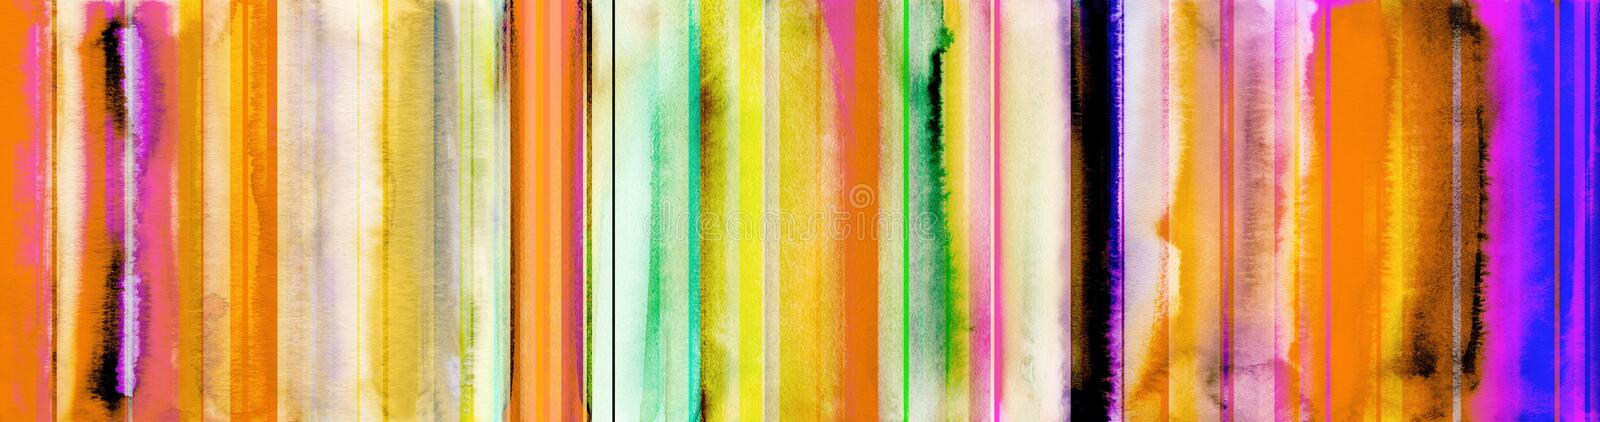 Colorful watercolor stripes banner with added straight lines pat. Colorful watercolor stripes and added straight lines banner in different tones and textures vector illustration